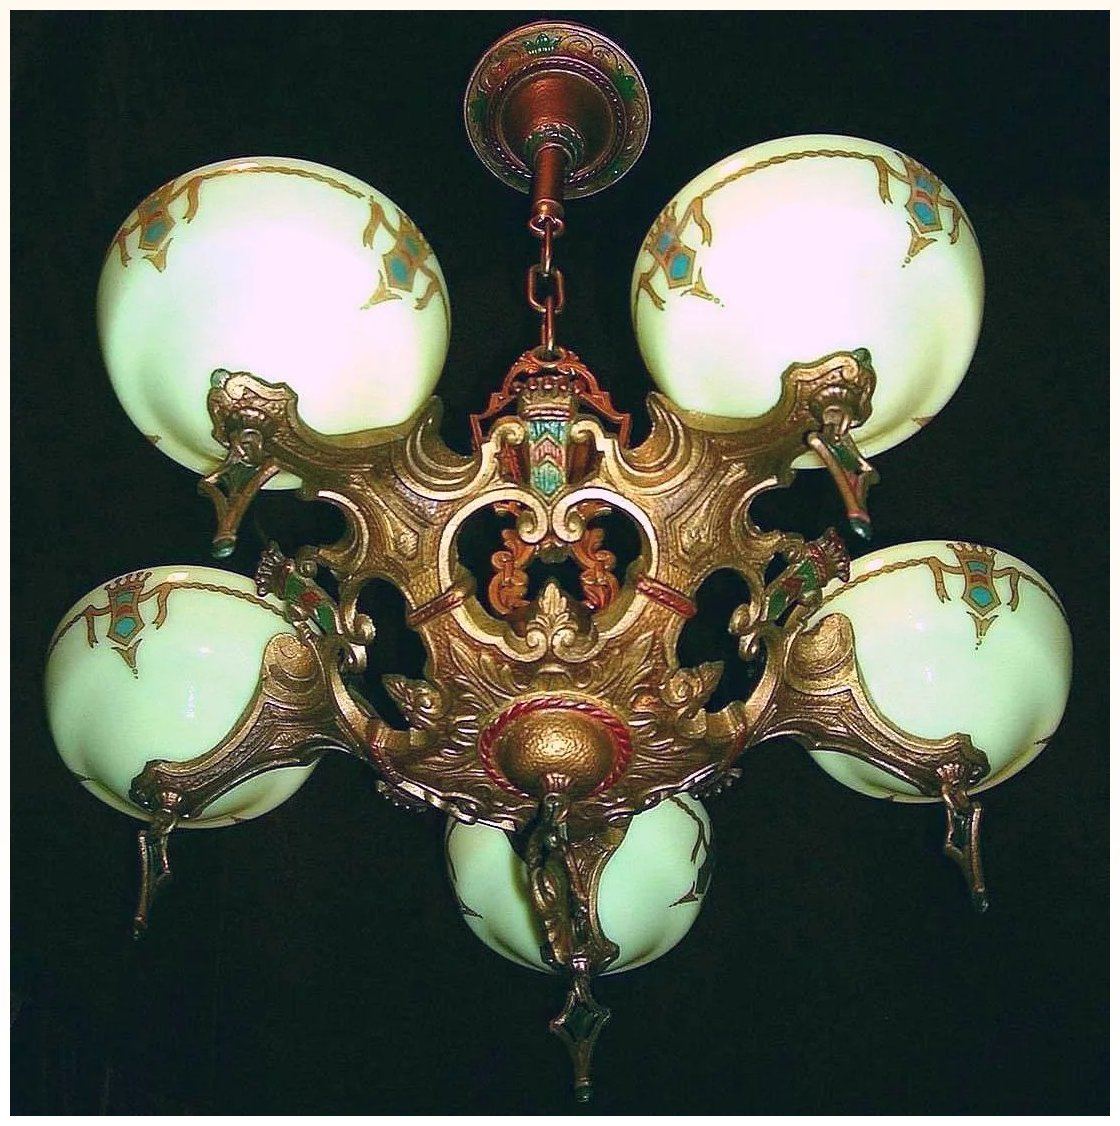 Vintage art deco slip shade chandelier by gill glass lofty vintage art deco slip shade chandelier by gill glass click to expand arubaitofo Choice Image